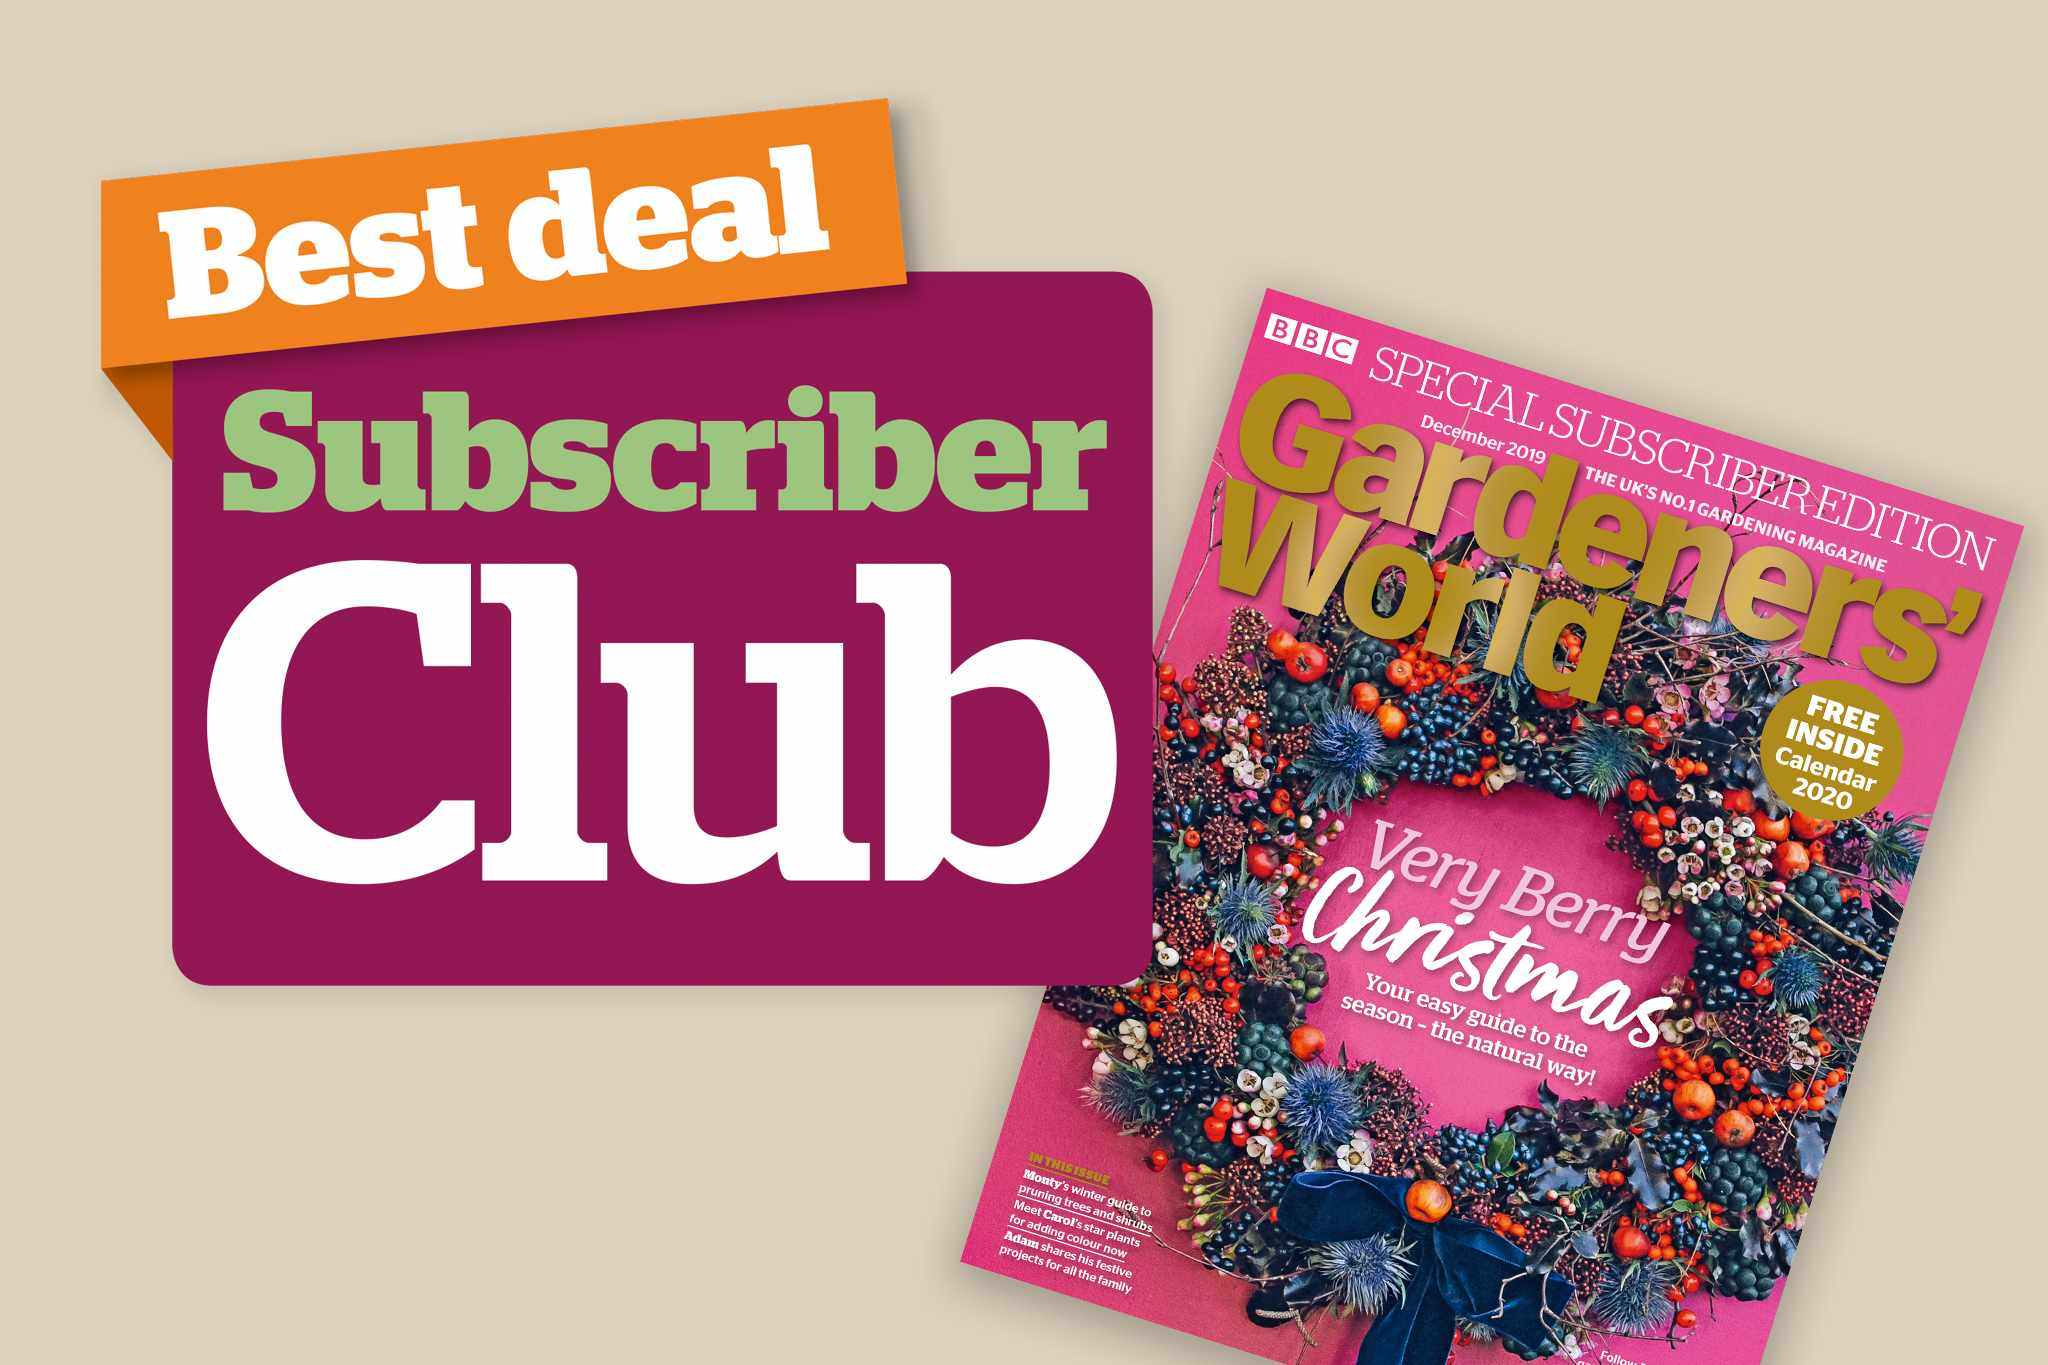 New December issue: Subscriber Club offers